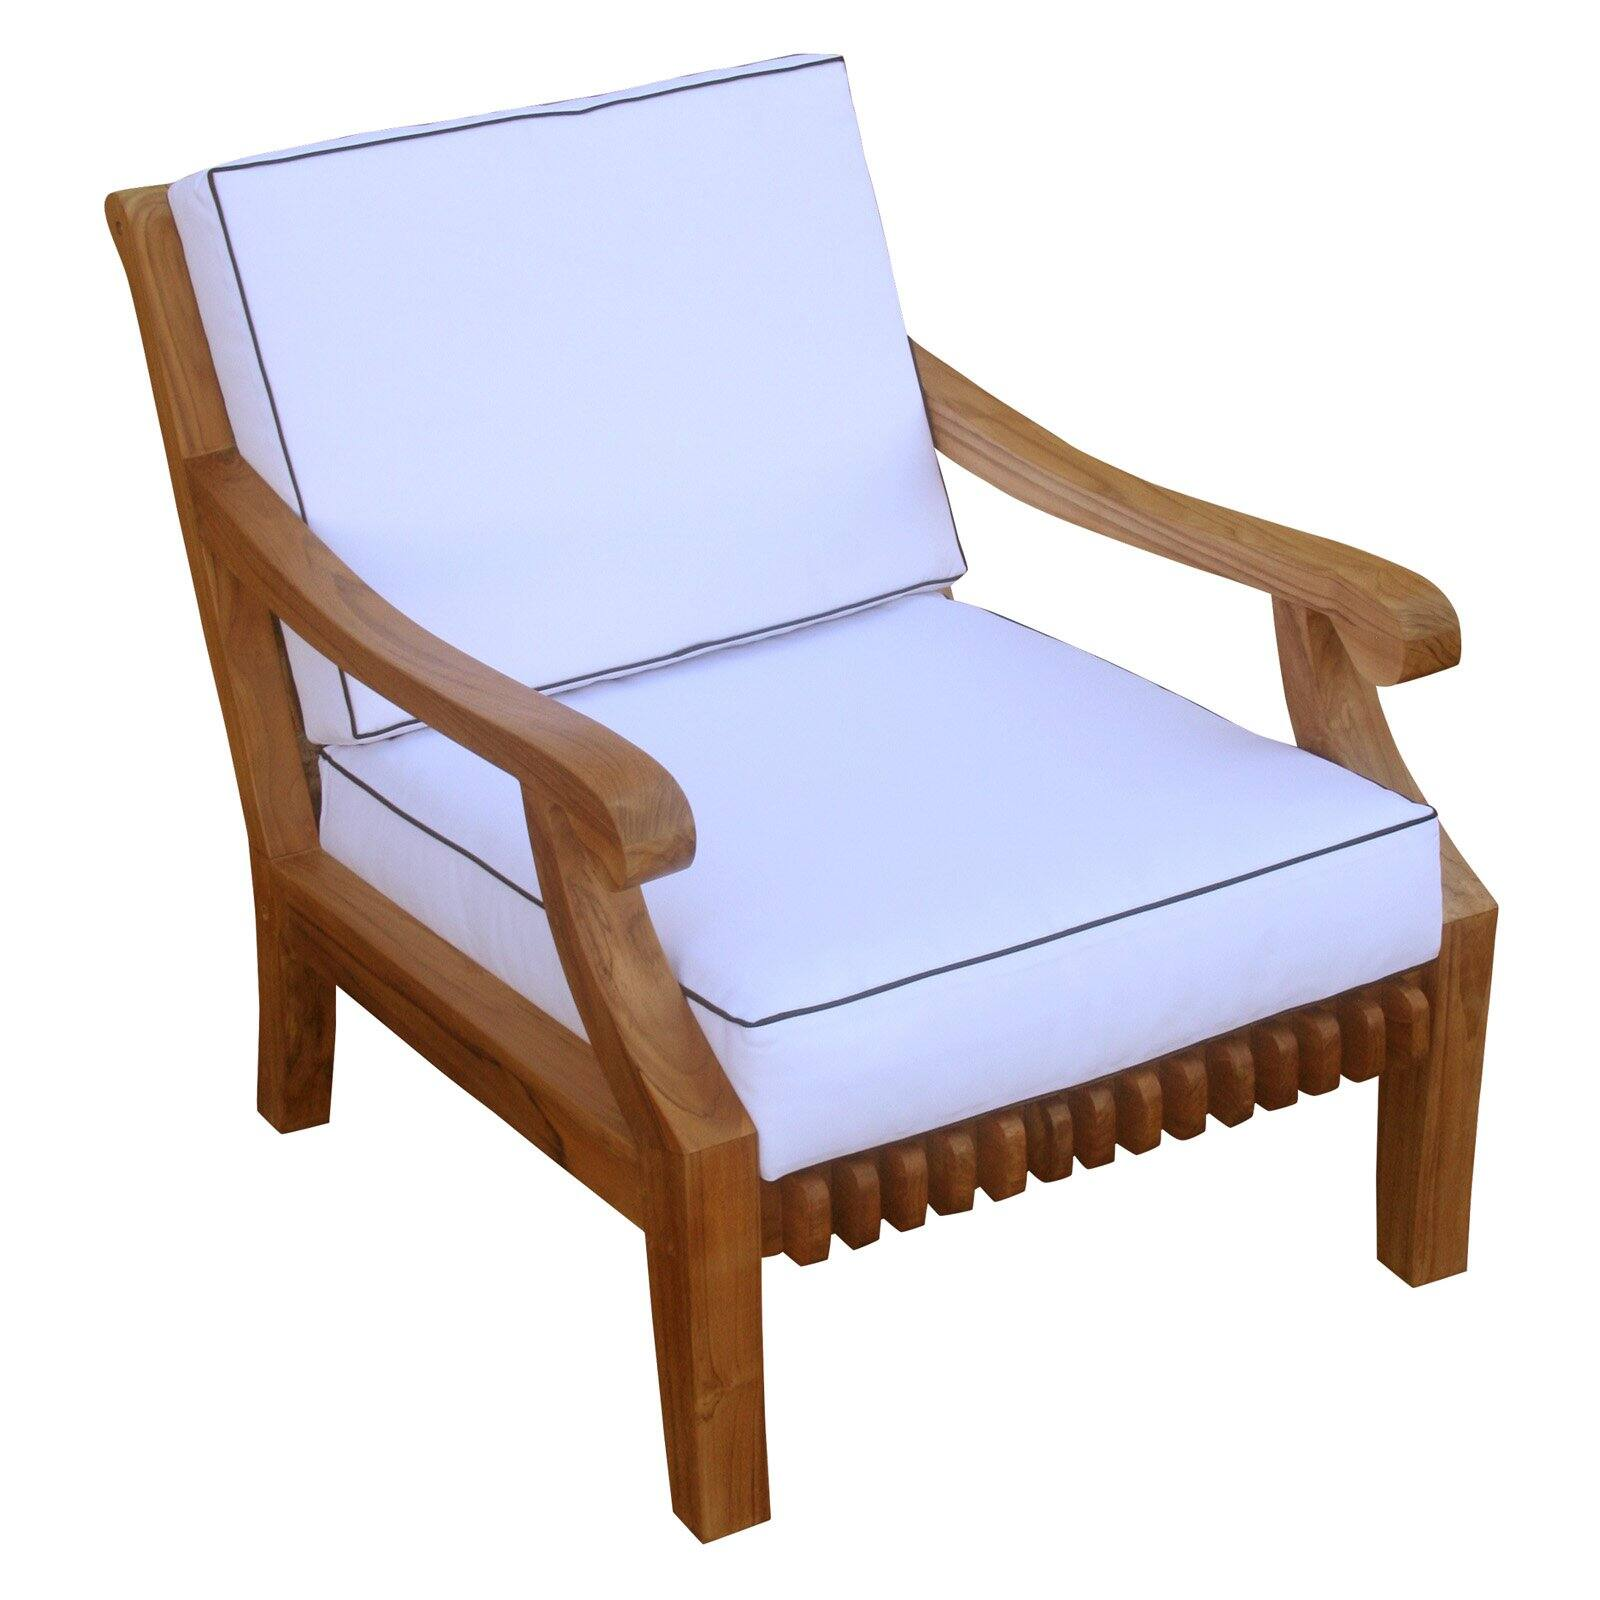 Chic Teak Teak Wood Deep Seating Indoor Outdoor Patio Lounge Chair With Cushion Walmart Com Walmart Com